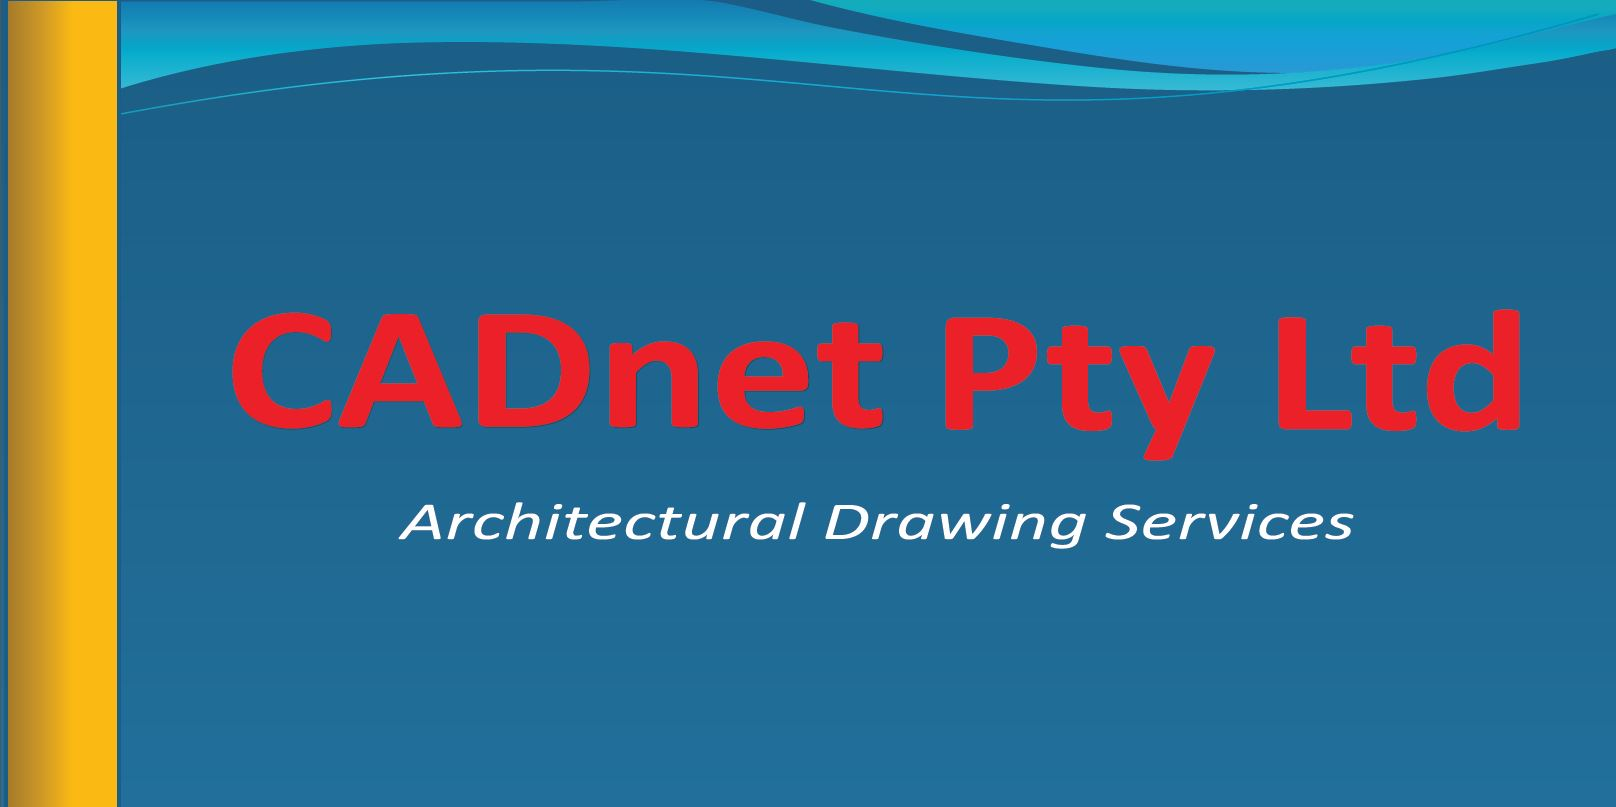 CADnet Pty Ltd